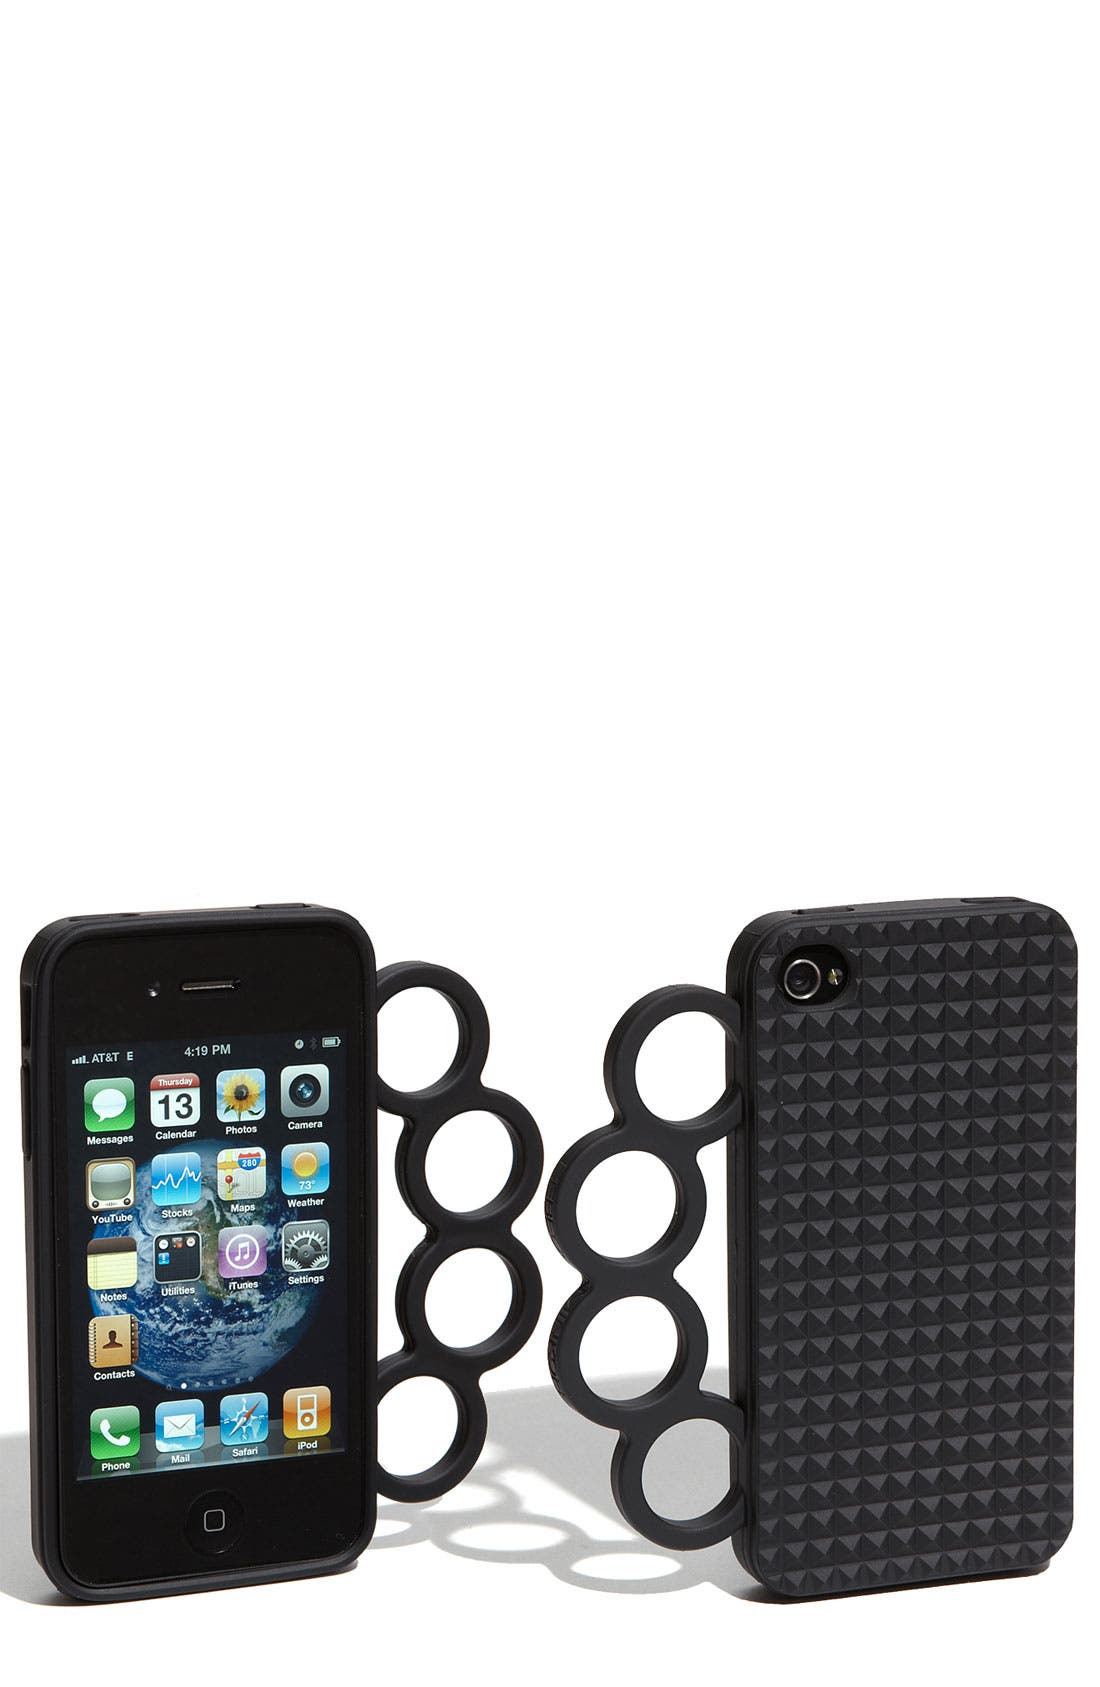 Main Image - Rebecca Minkoff 'Knuckles' iPhone 4 & 4S Case